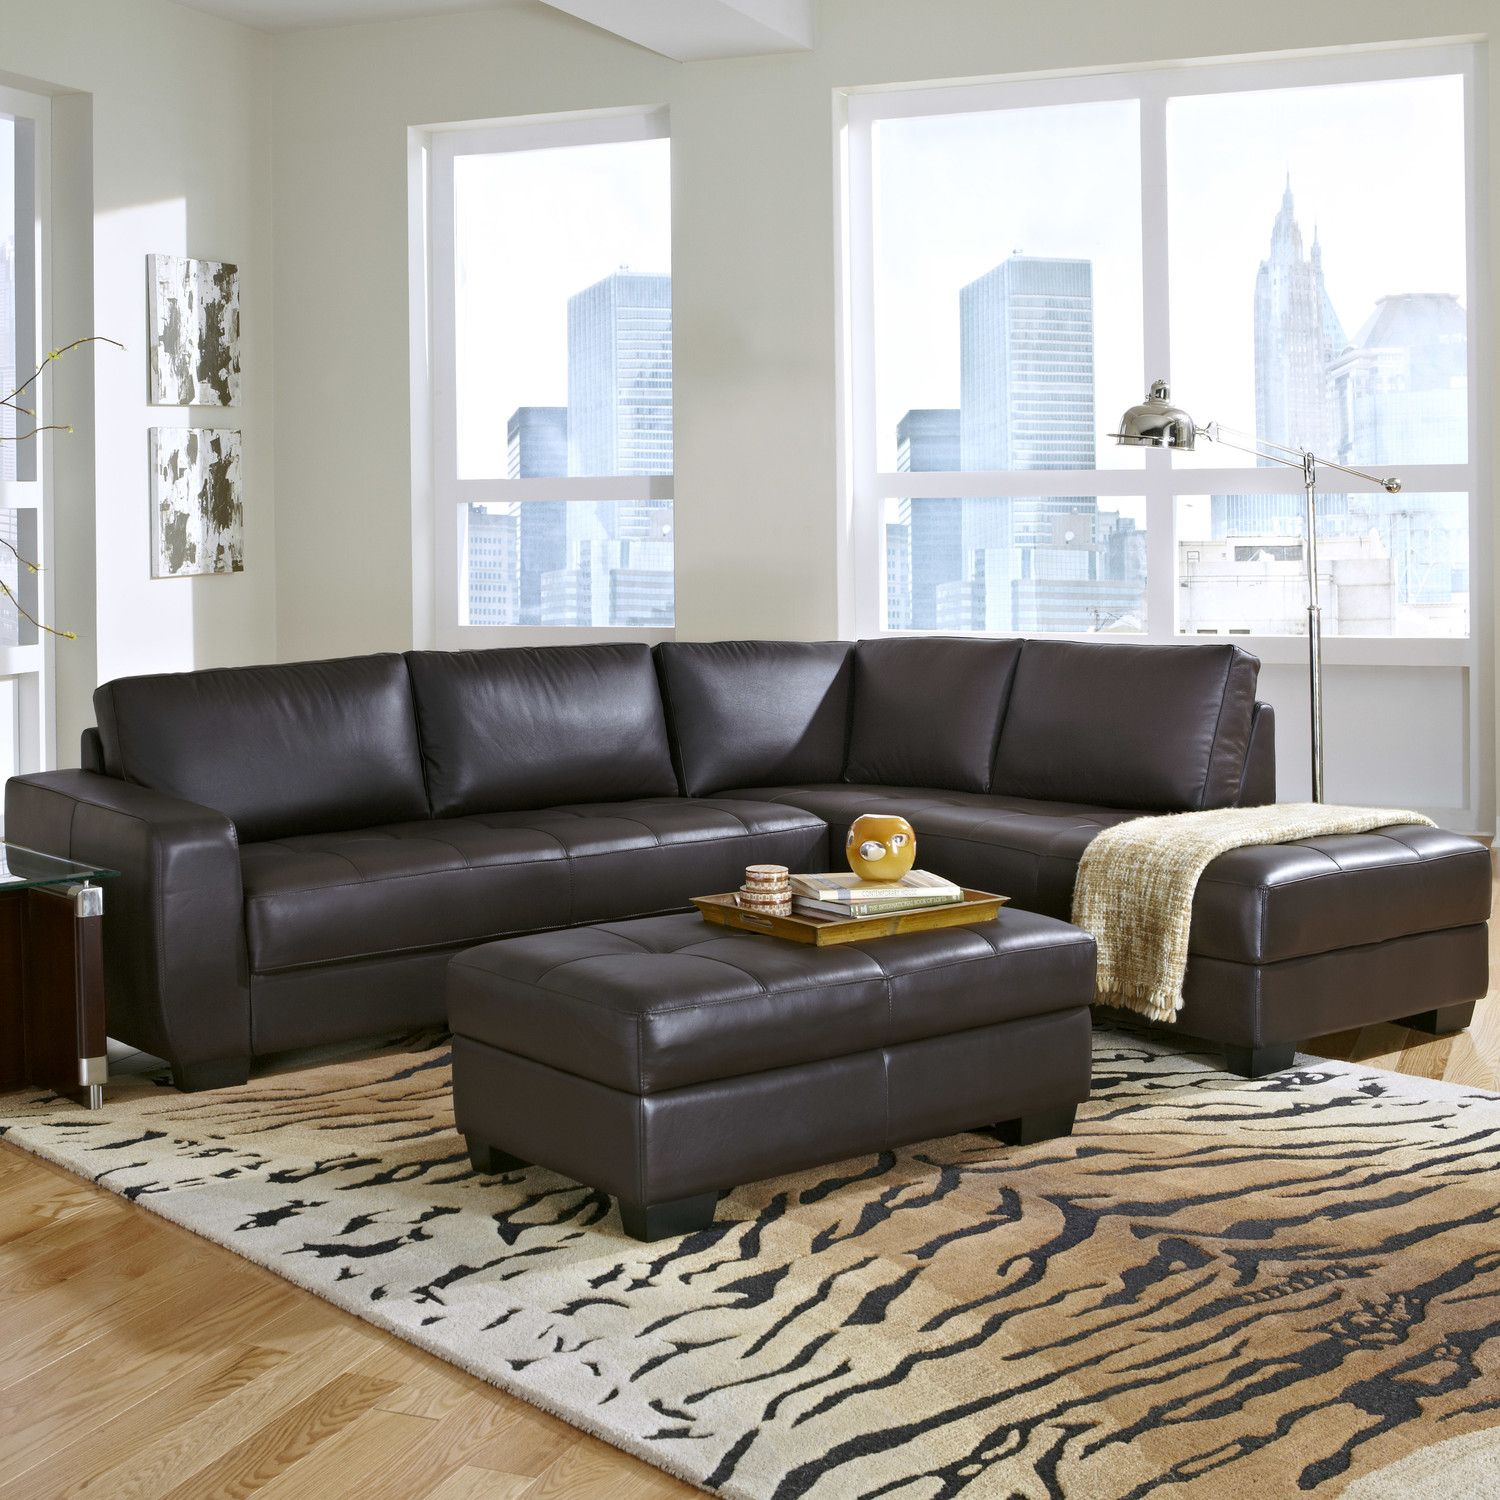 Captivating Lazzaro Leather Frandis Leather Sectional U0026 Reviews | Wayfair